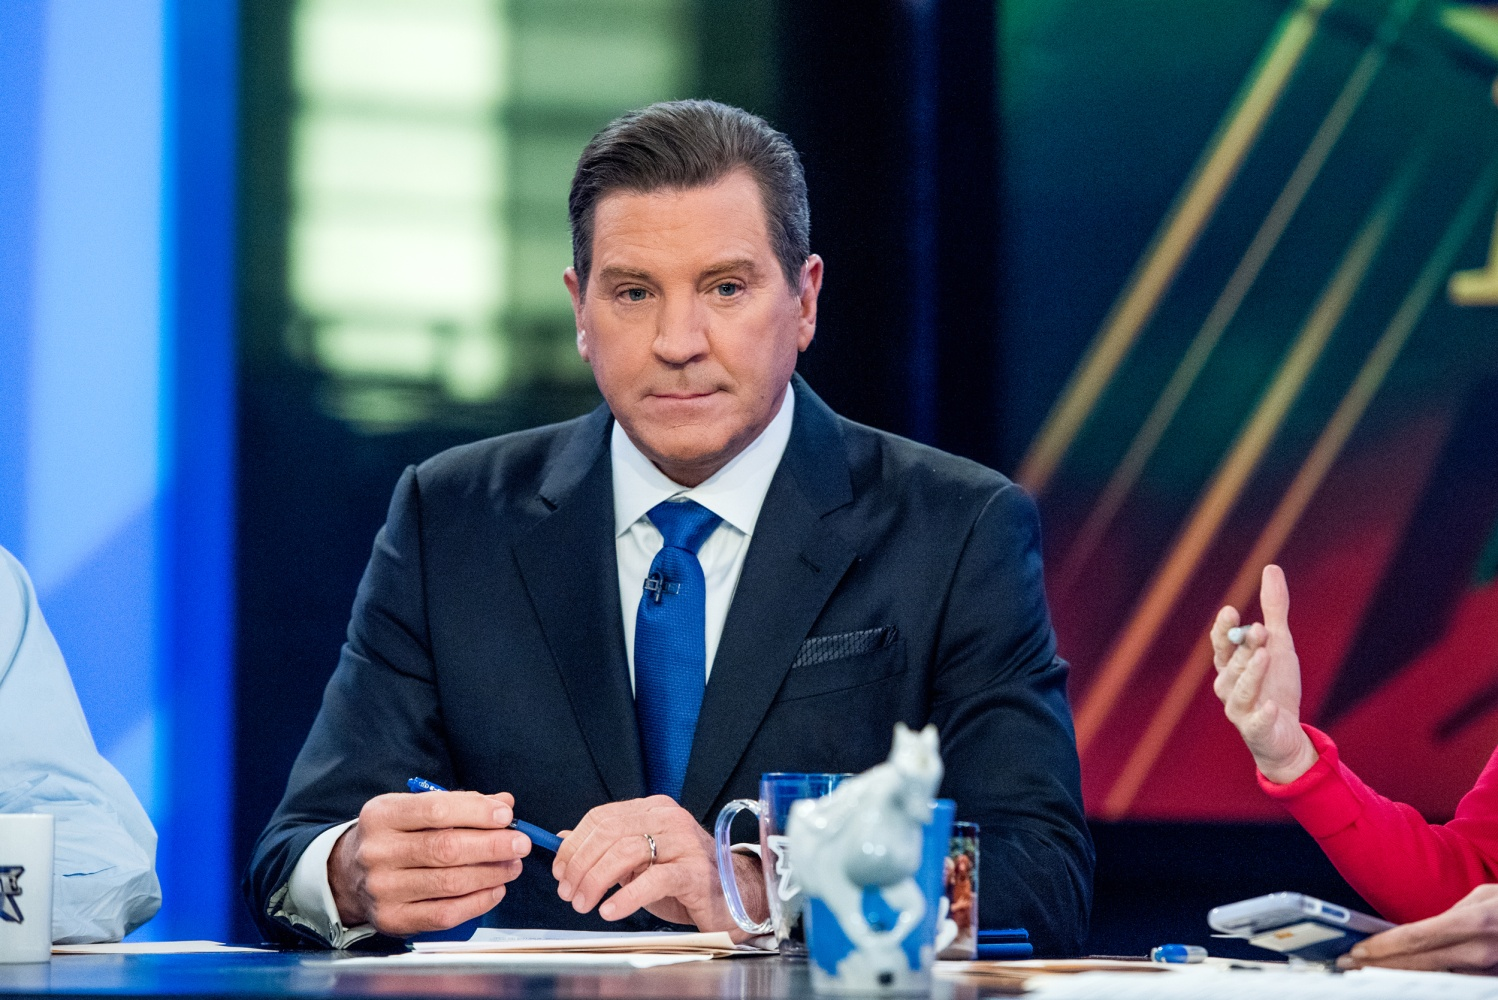 Eric Bolling Suspended From Fox News Pending Investigation Results